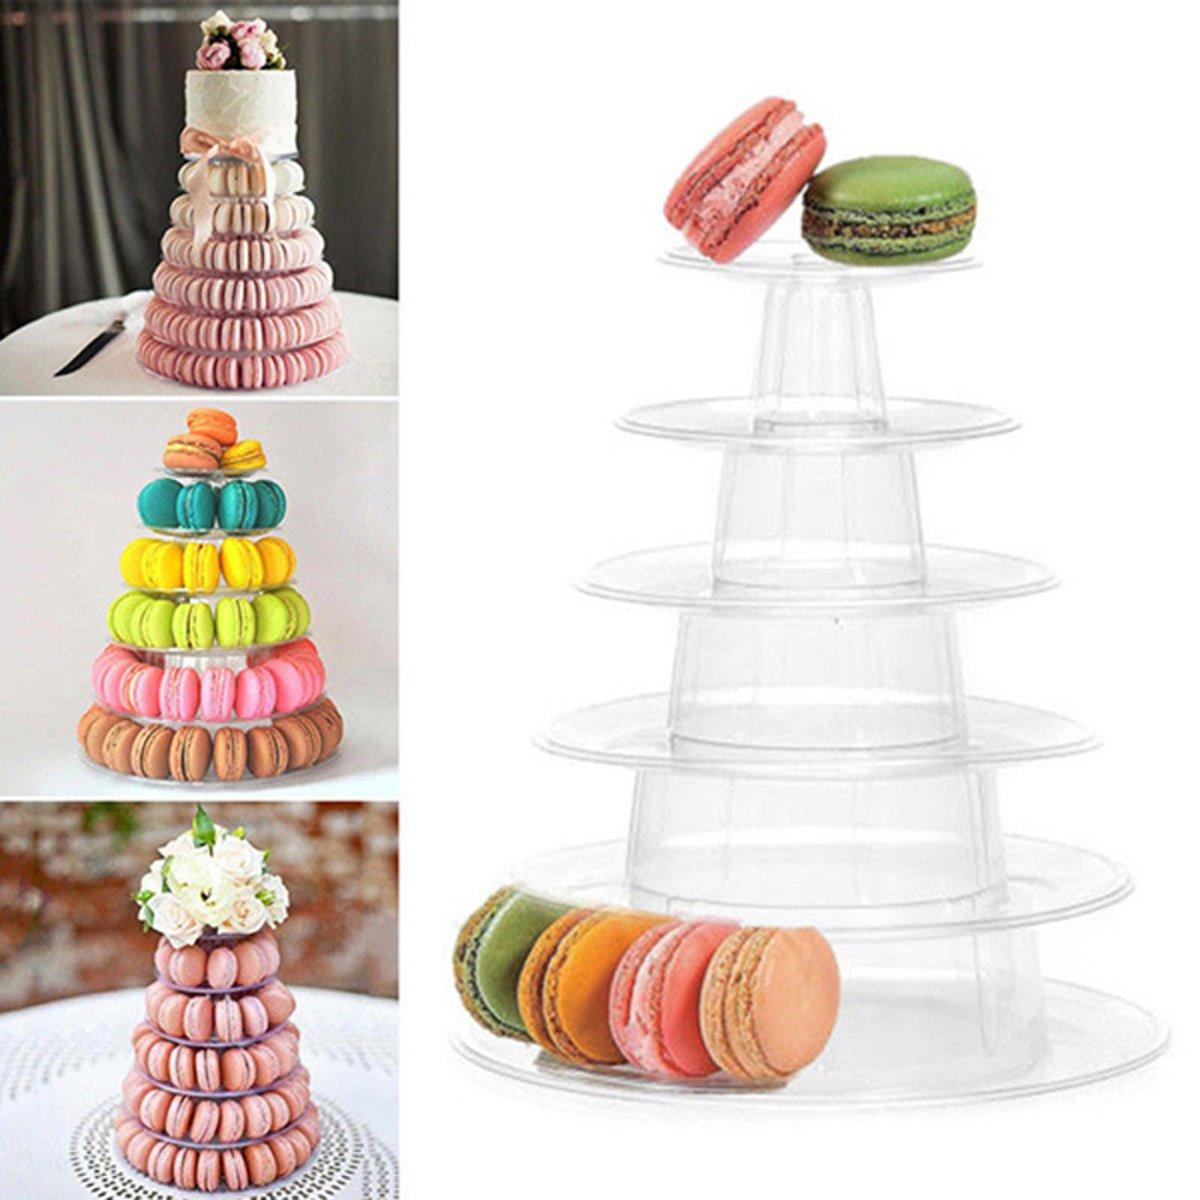 6 Tier Round Dessert Stand Cupcake Holder Clear Acrylic Birthday Wedding Decorations, Banggood  - buy with discount